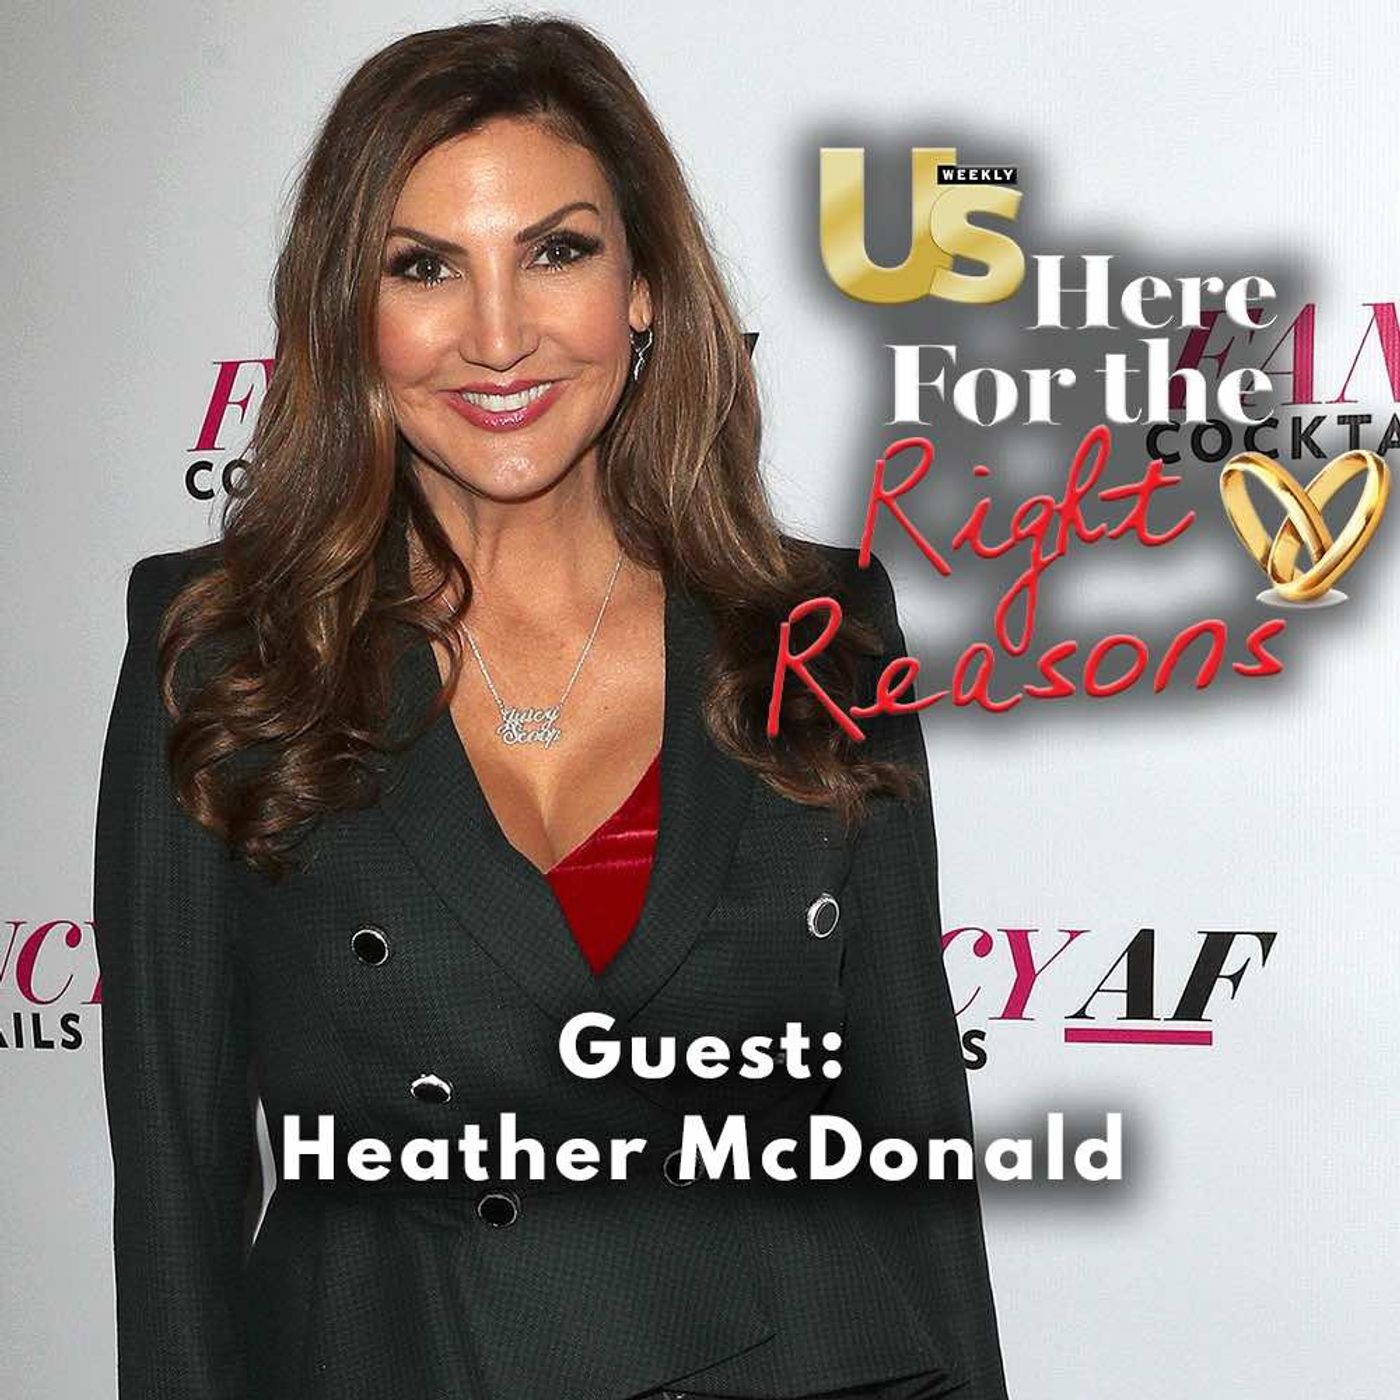 Katie Thurston Week 2: Heather McDonald Tells Us What You Didn't See on 'The Bachelorette'